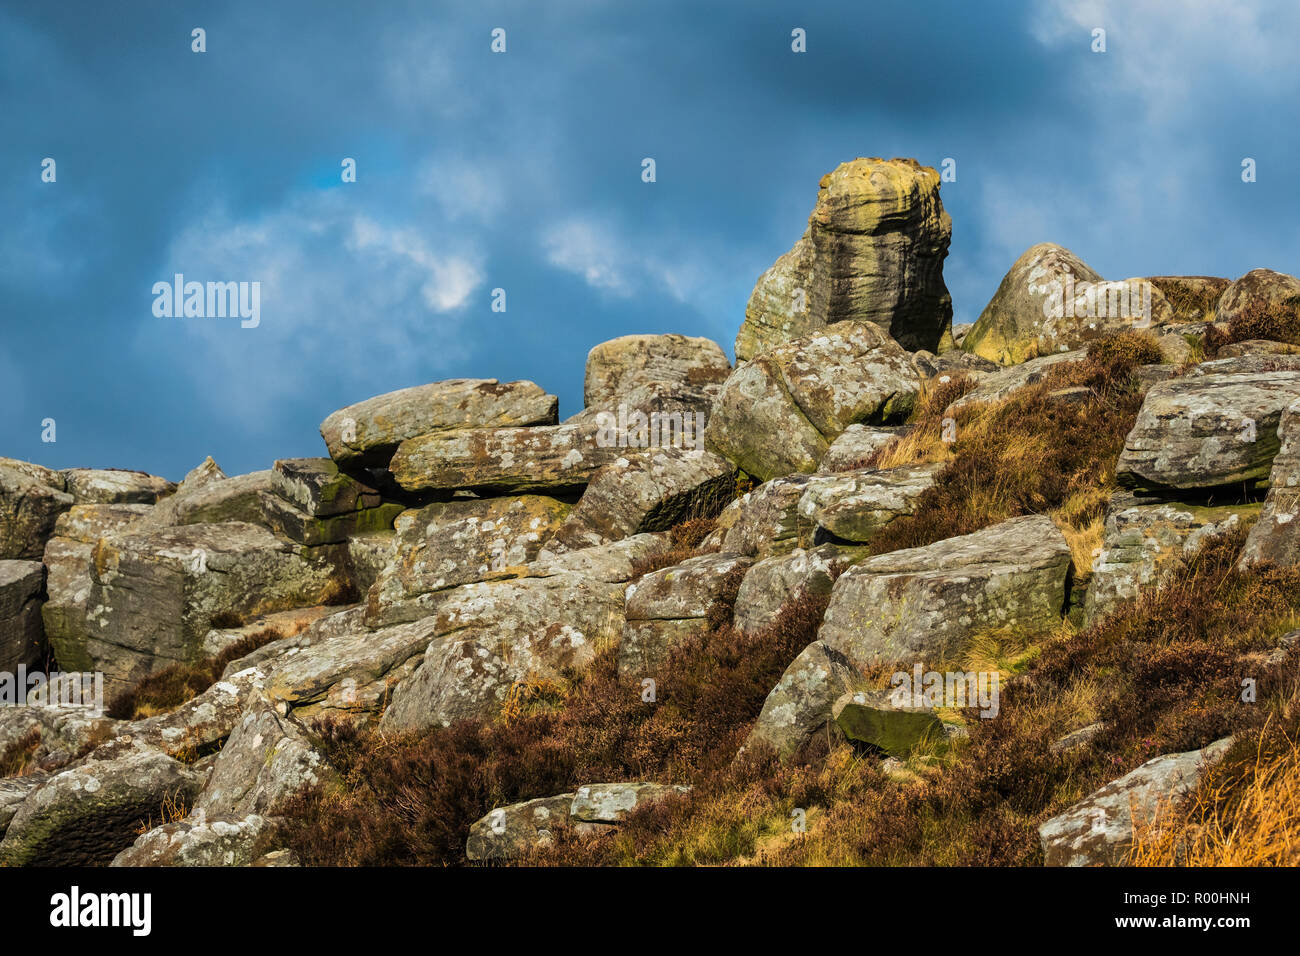 Large boulder line the gritstone edge at Curbar. - Stock Image